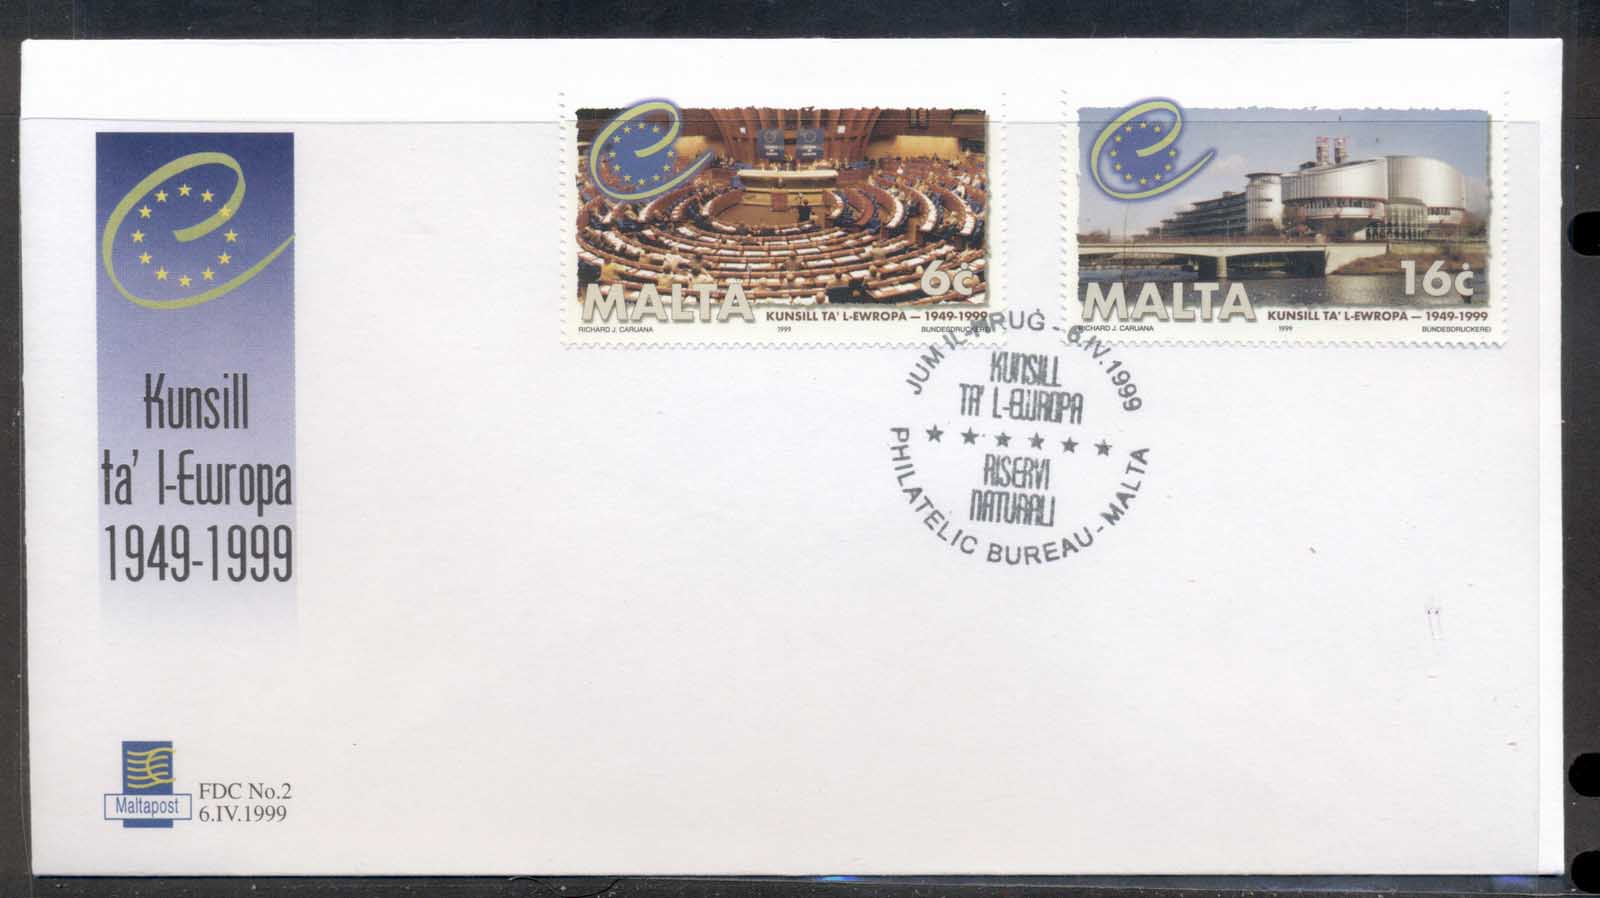 Malta 1999 Council of Europe FDC